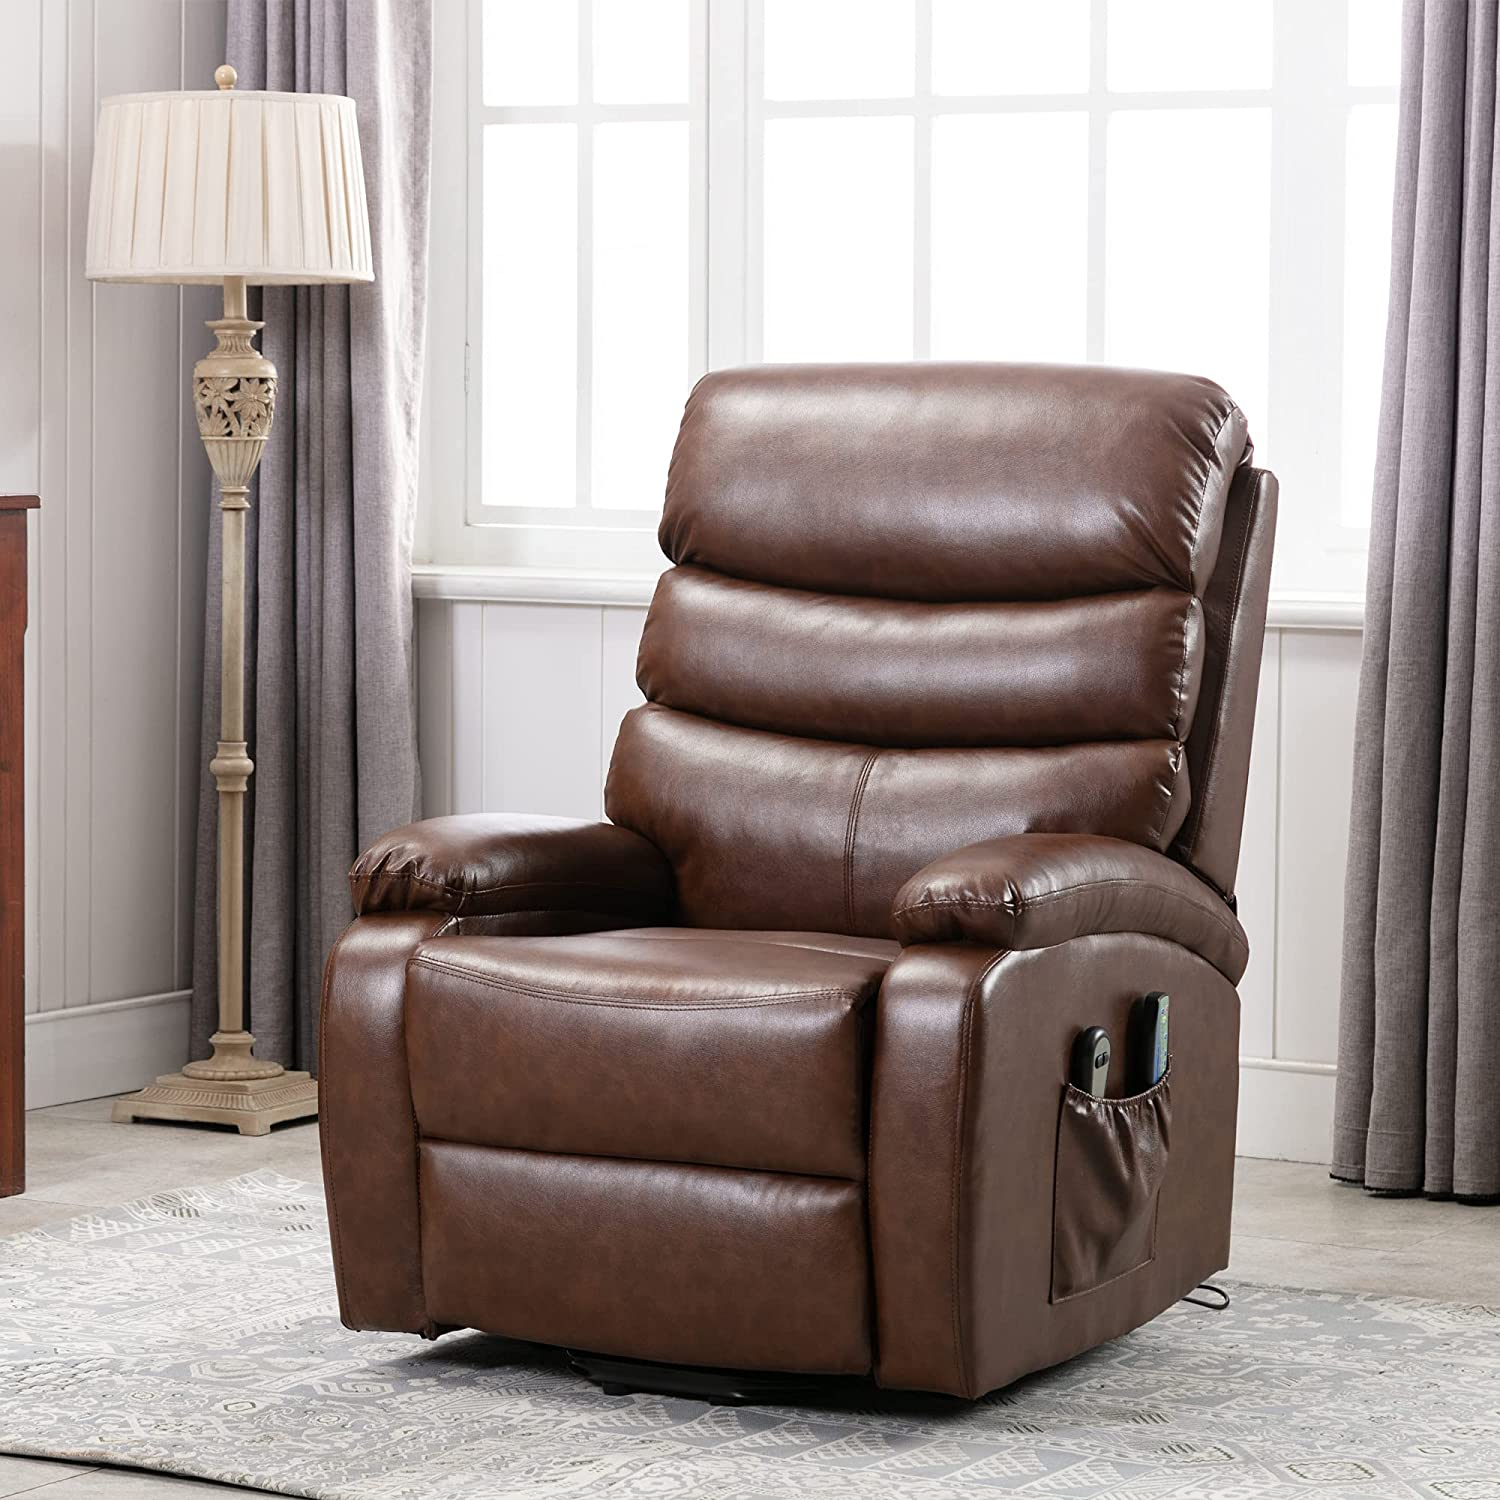 Electric Power Lift Recliner Superlatite Chair New York Mall Leather Faux M